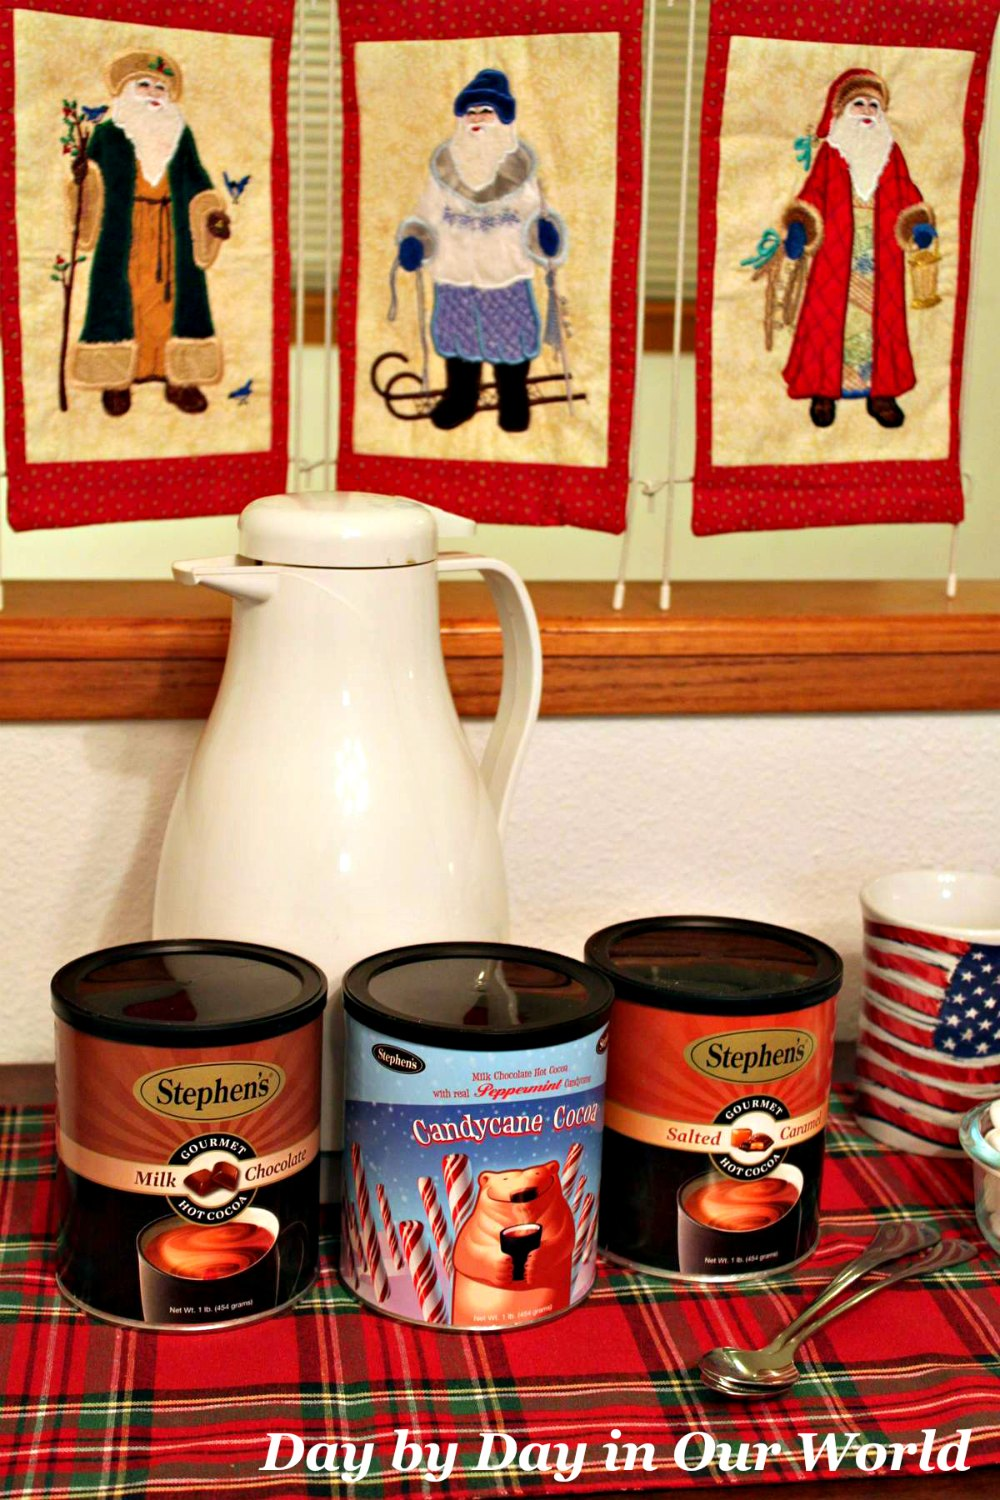 Stephens Gourmet Hot Cocoa for warming bellies and hearts.